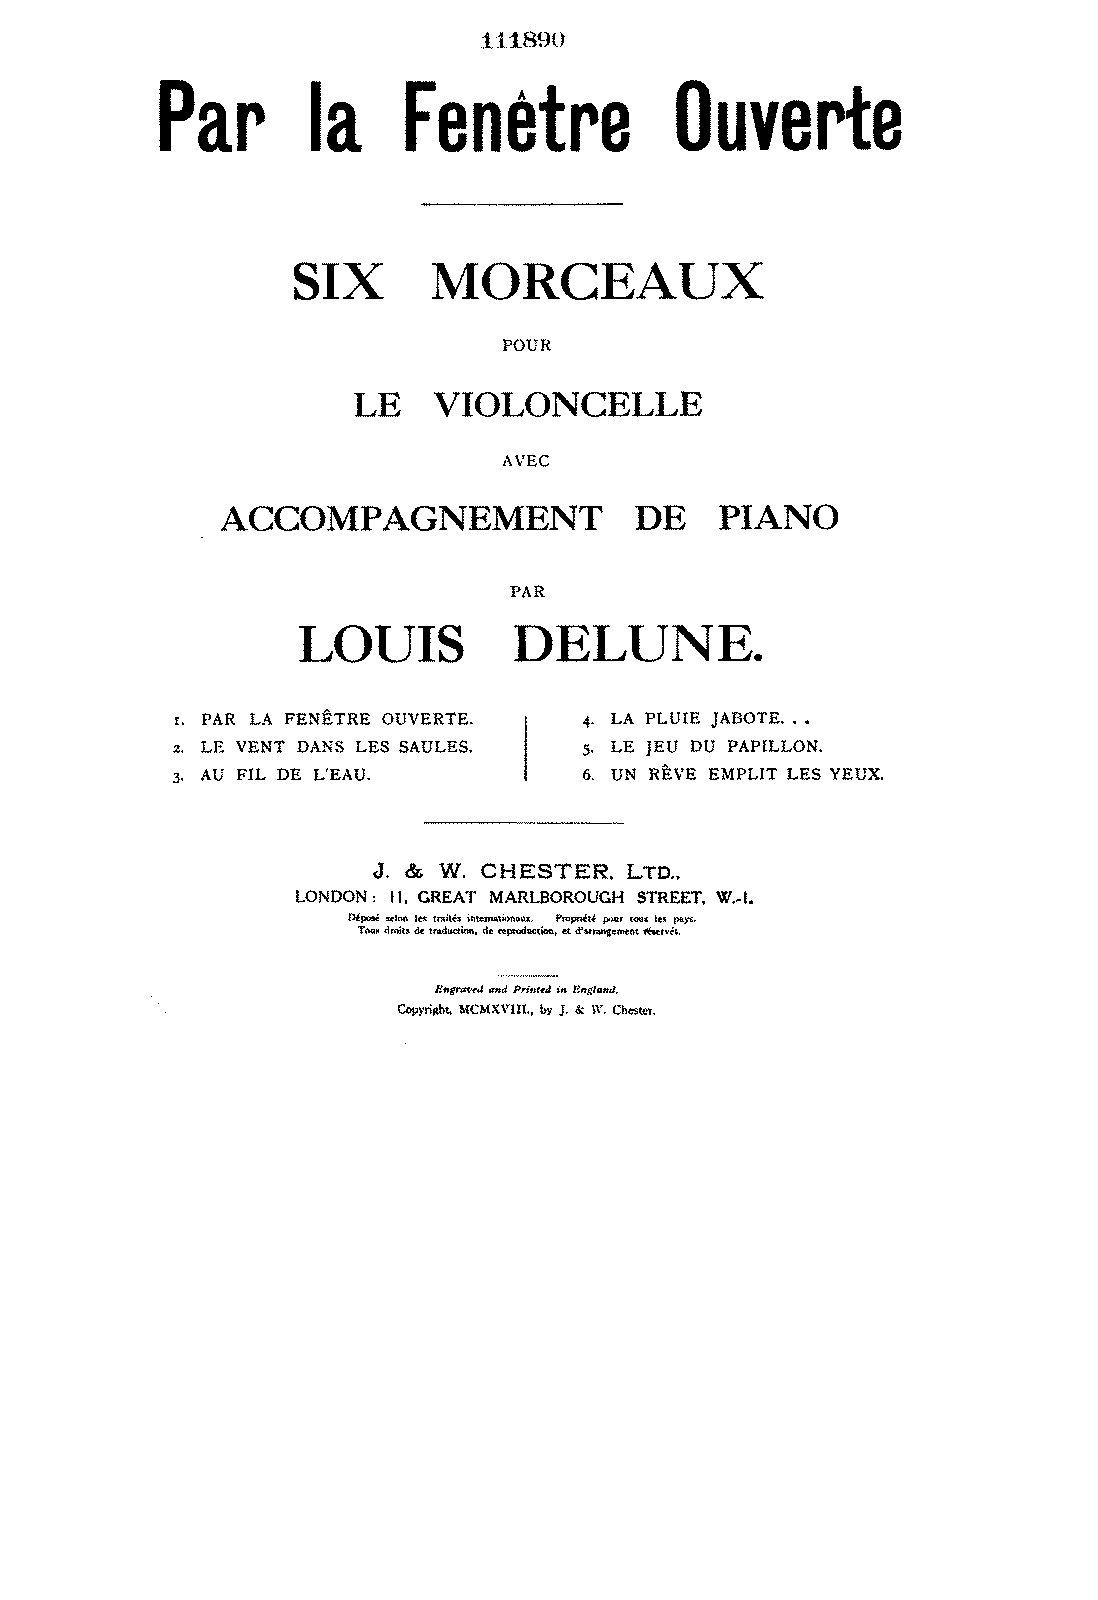 PMLP136101-Delune - Par la Fenetre Ouverte from 6 Morceaux for Cello and Piano score.pdf